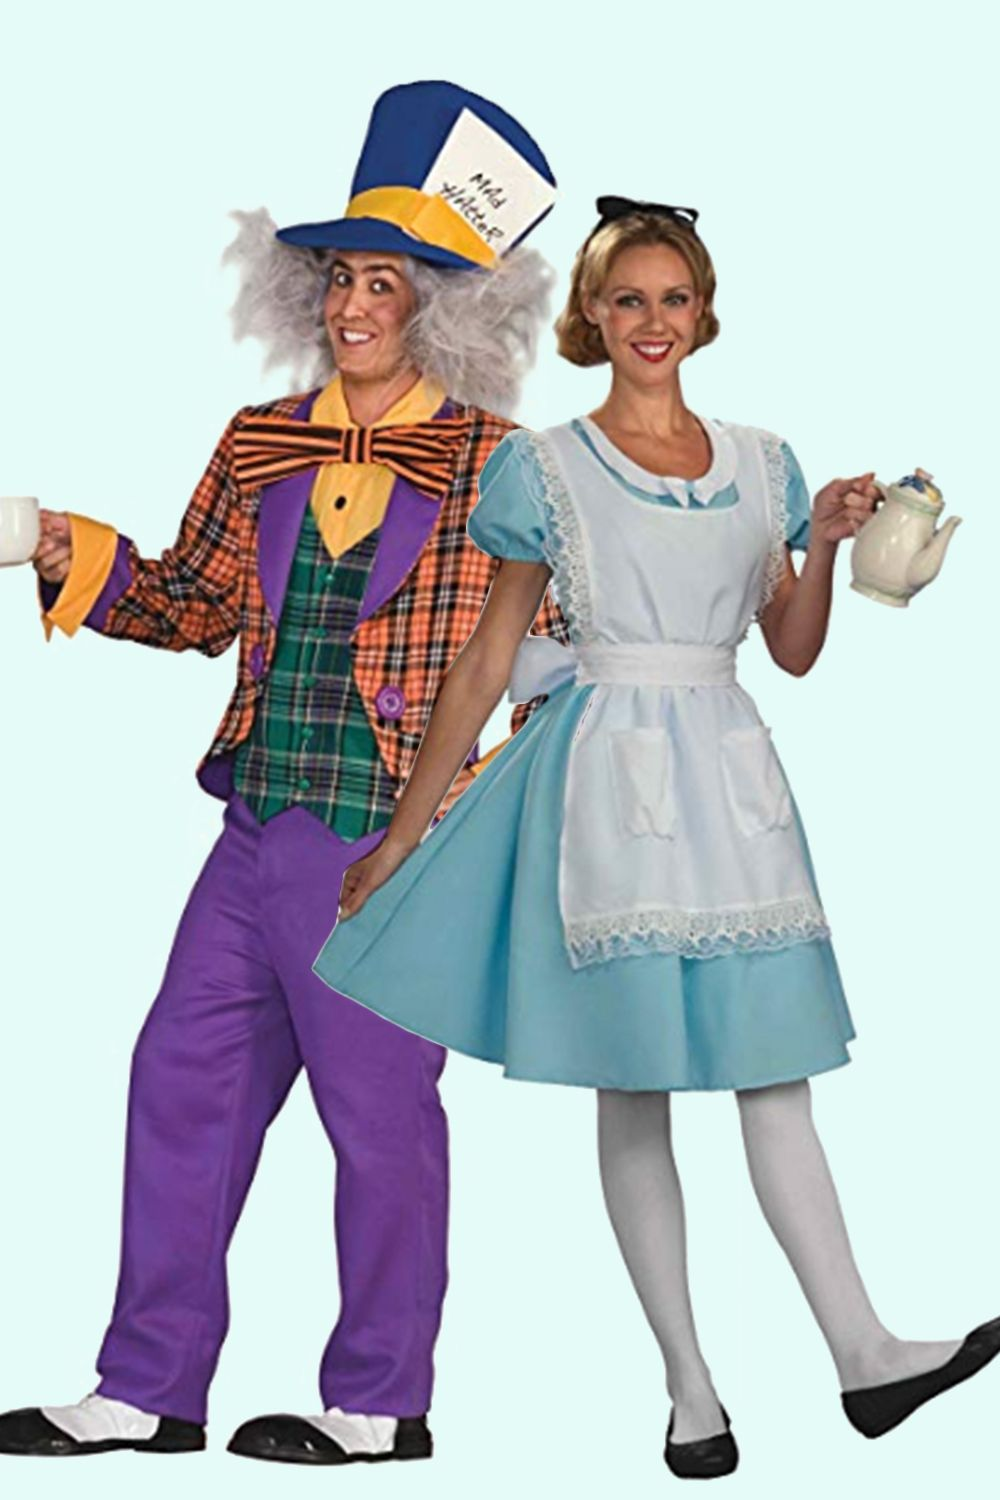 halloween costumes for couples. there are top cute halloween